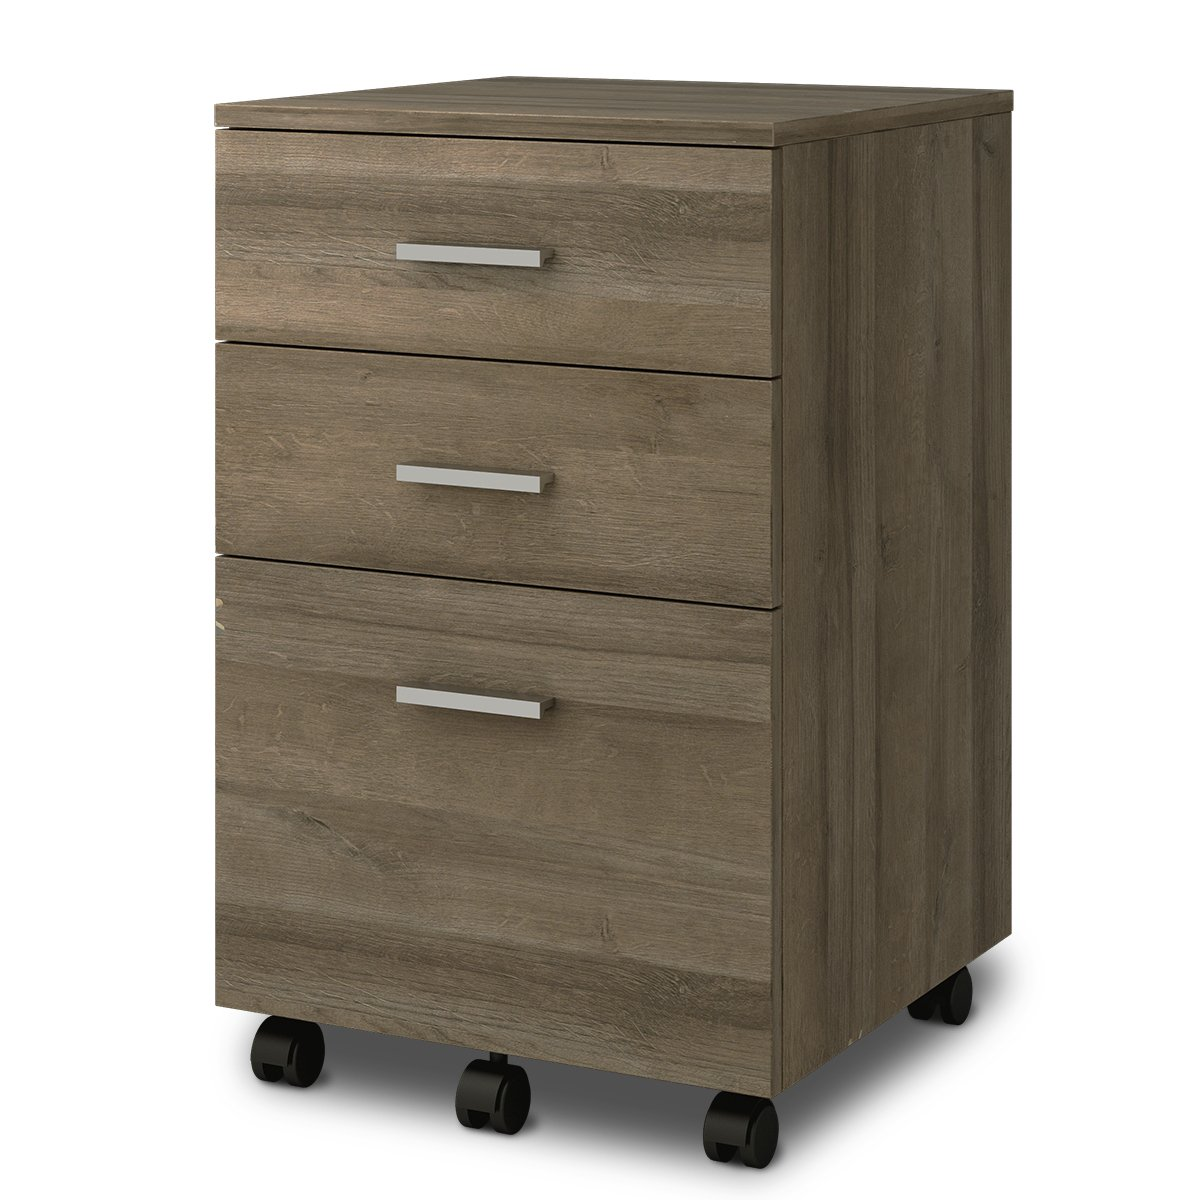 DEVAISE 3-Drawer Wood Mobile File Cabinet PCWC254765